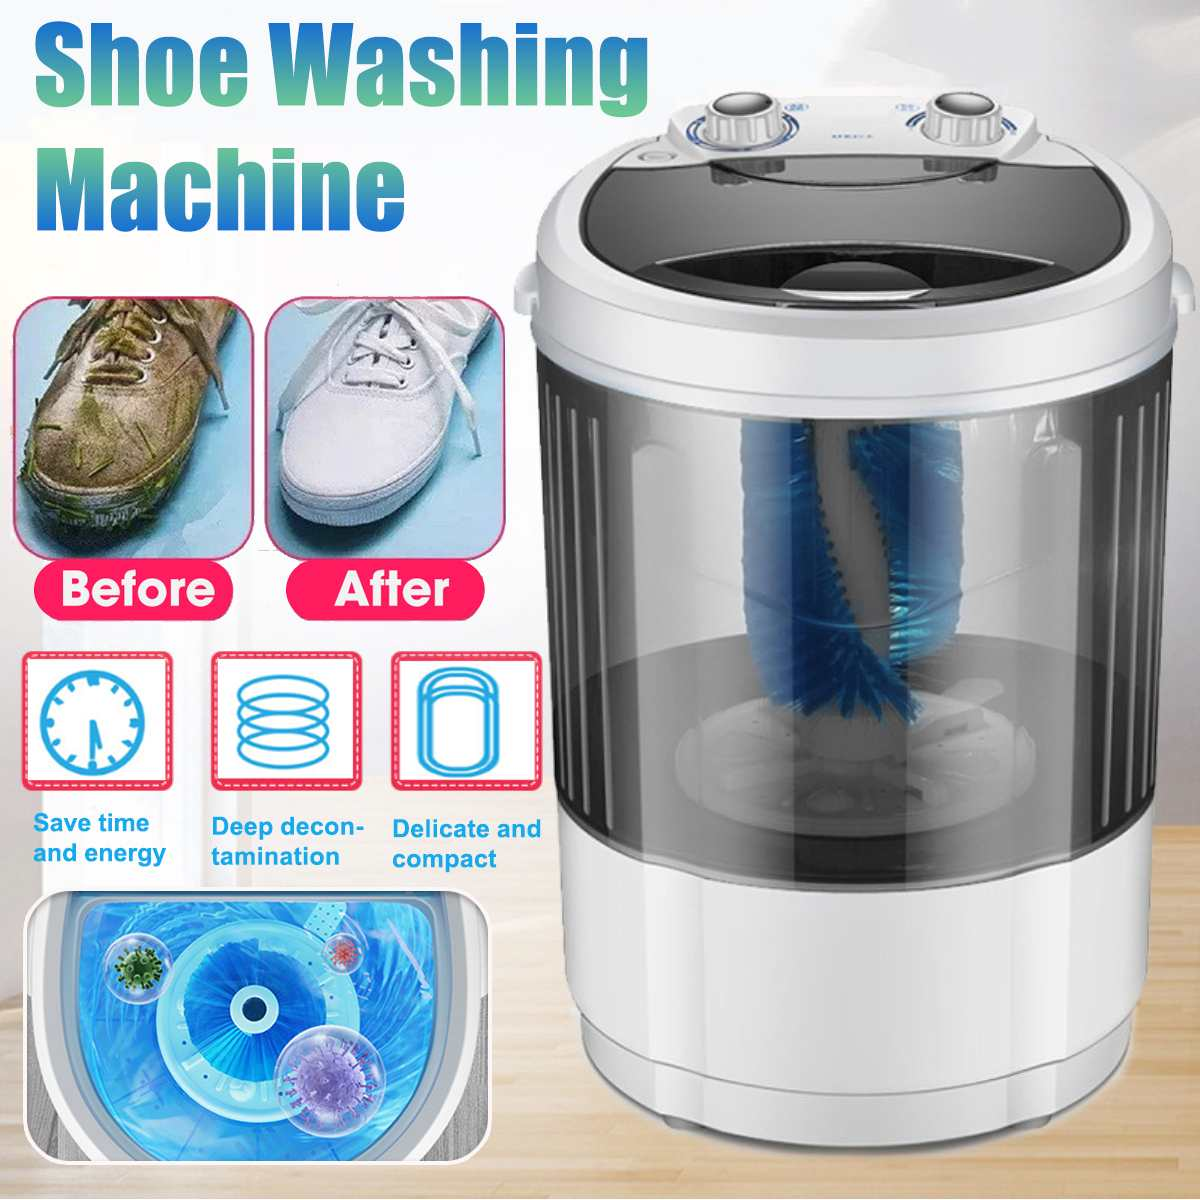 Shoes Washing Machine 4.5kg Portable Household Single Tube Washer and Dryer Machine for Shoes UV bacteriostasis Shoes Cleaner image